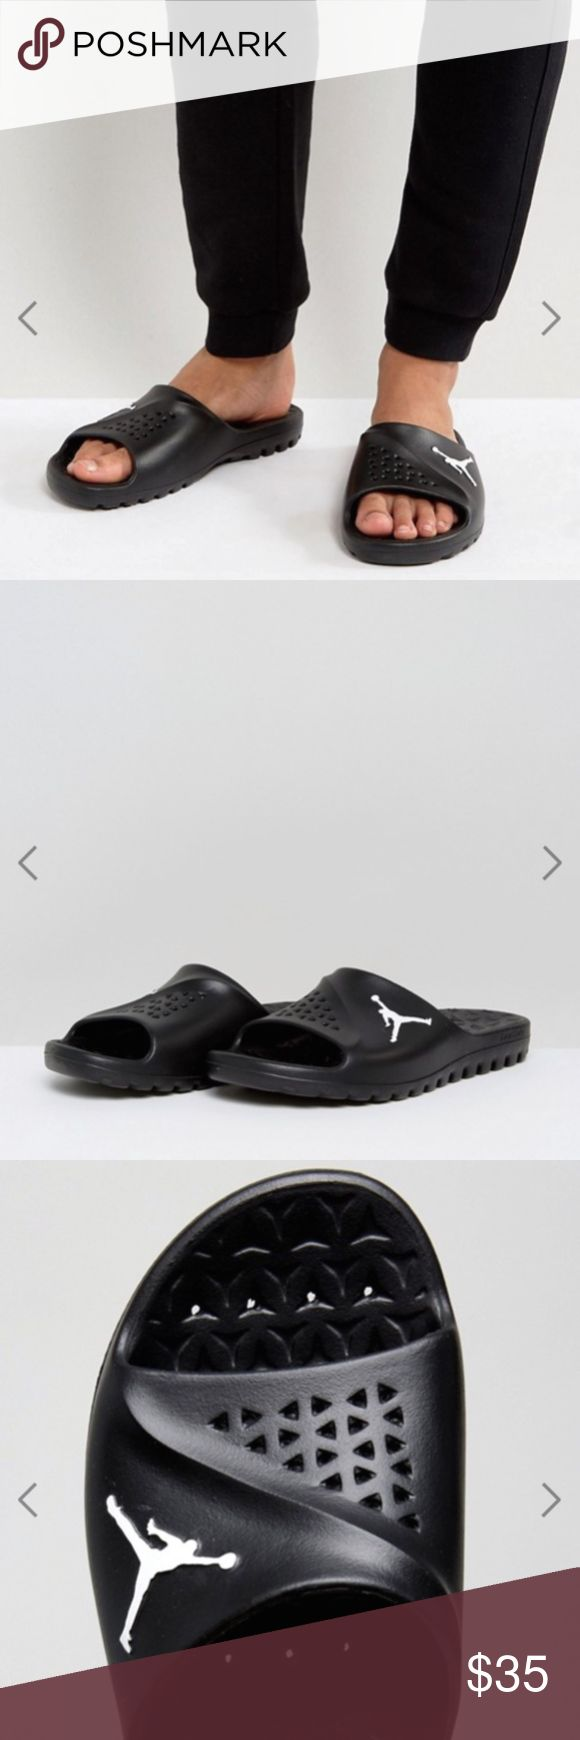 Nike JORDAN SUPER FLY TEAM SLIDE Men's Sandal The Jordan Super.Fly Team Men's Slide is ideal for before the game and after,   designed with a cushy footbed and flexible outsole for a natural feel and plush comfort.  Brand new in a box Nike Shoes Sandals & Flip-Flops